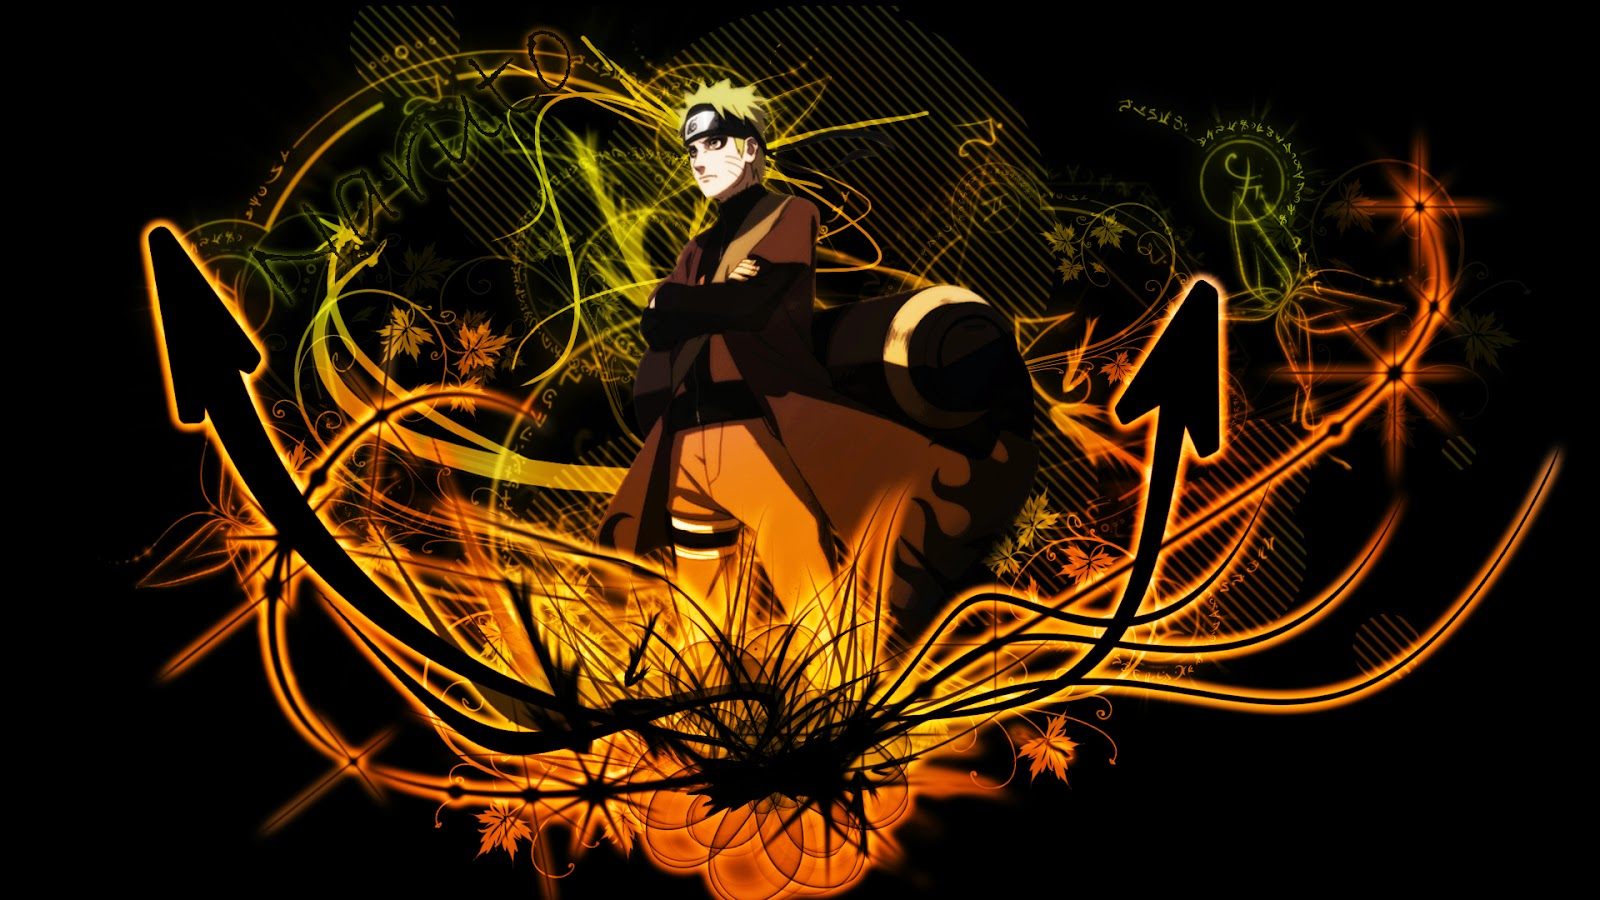 Wonderful Wallpaper Naruto Landscape - naruto-anime-wallpaper-1920x1080-1889  You Should Have_49421.jpg